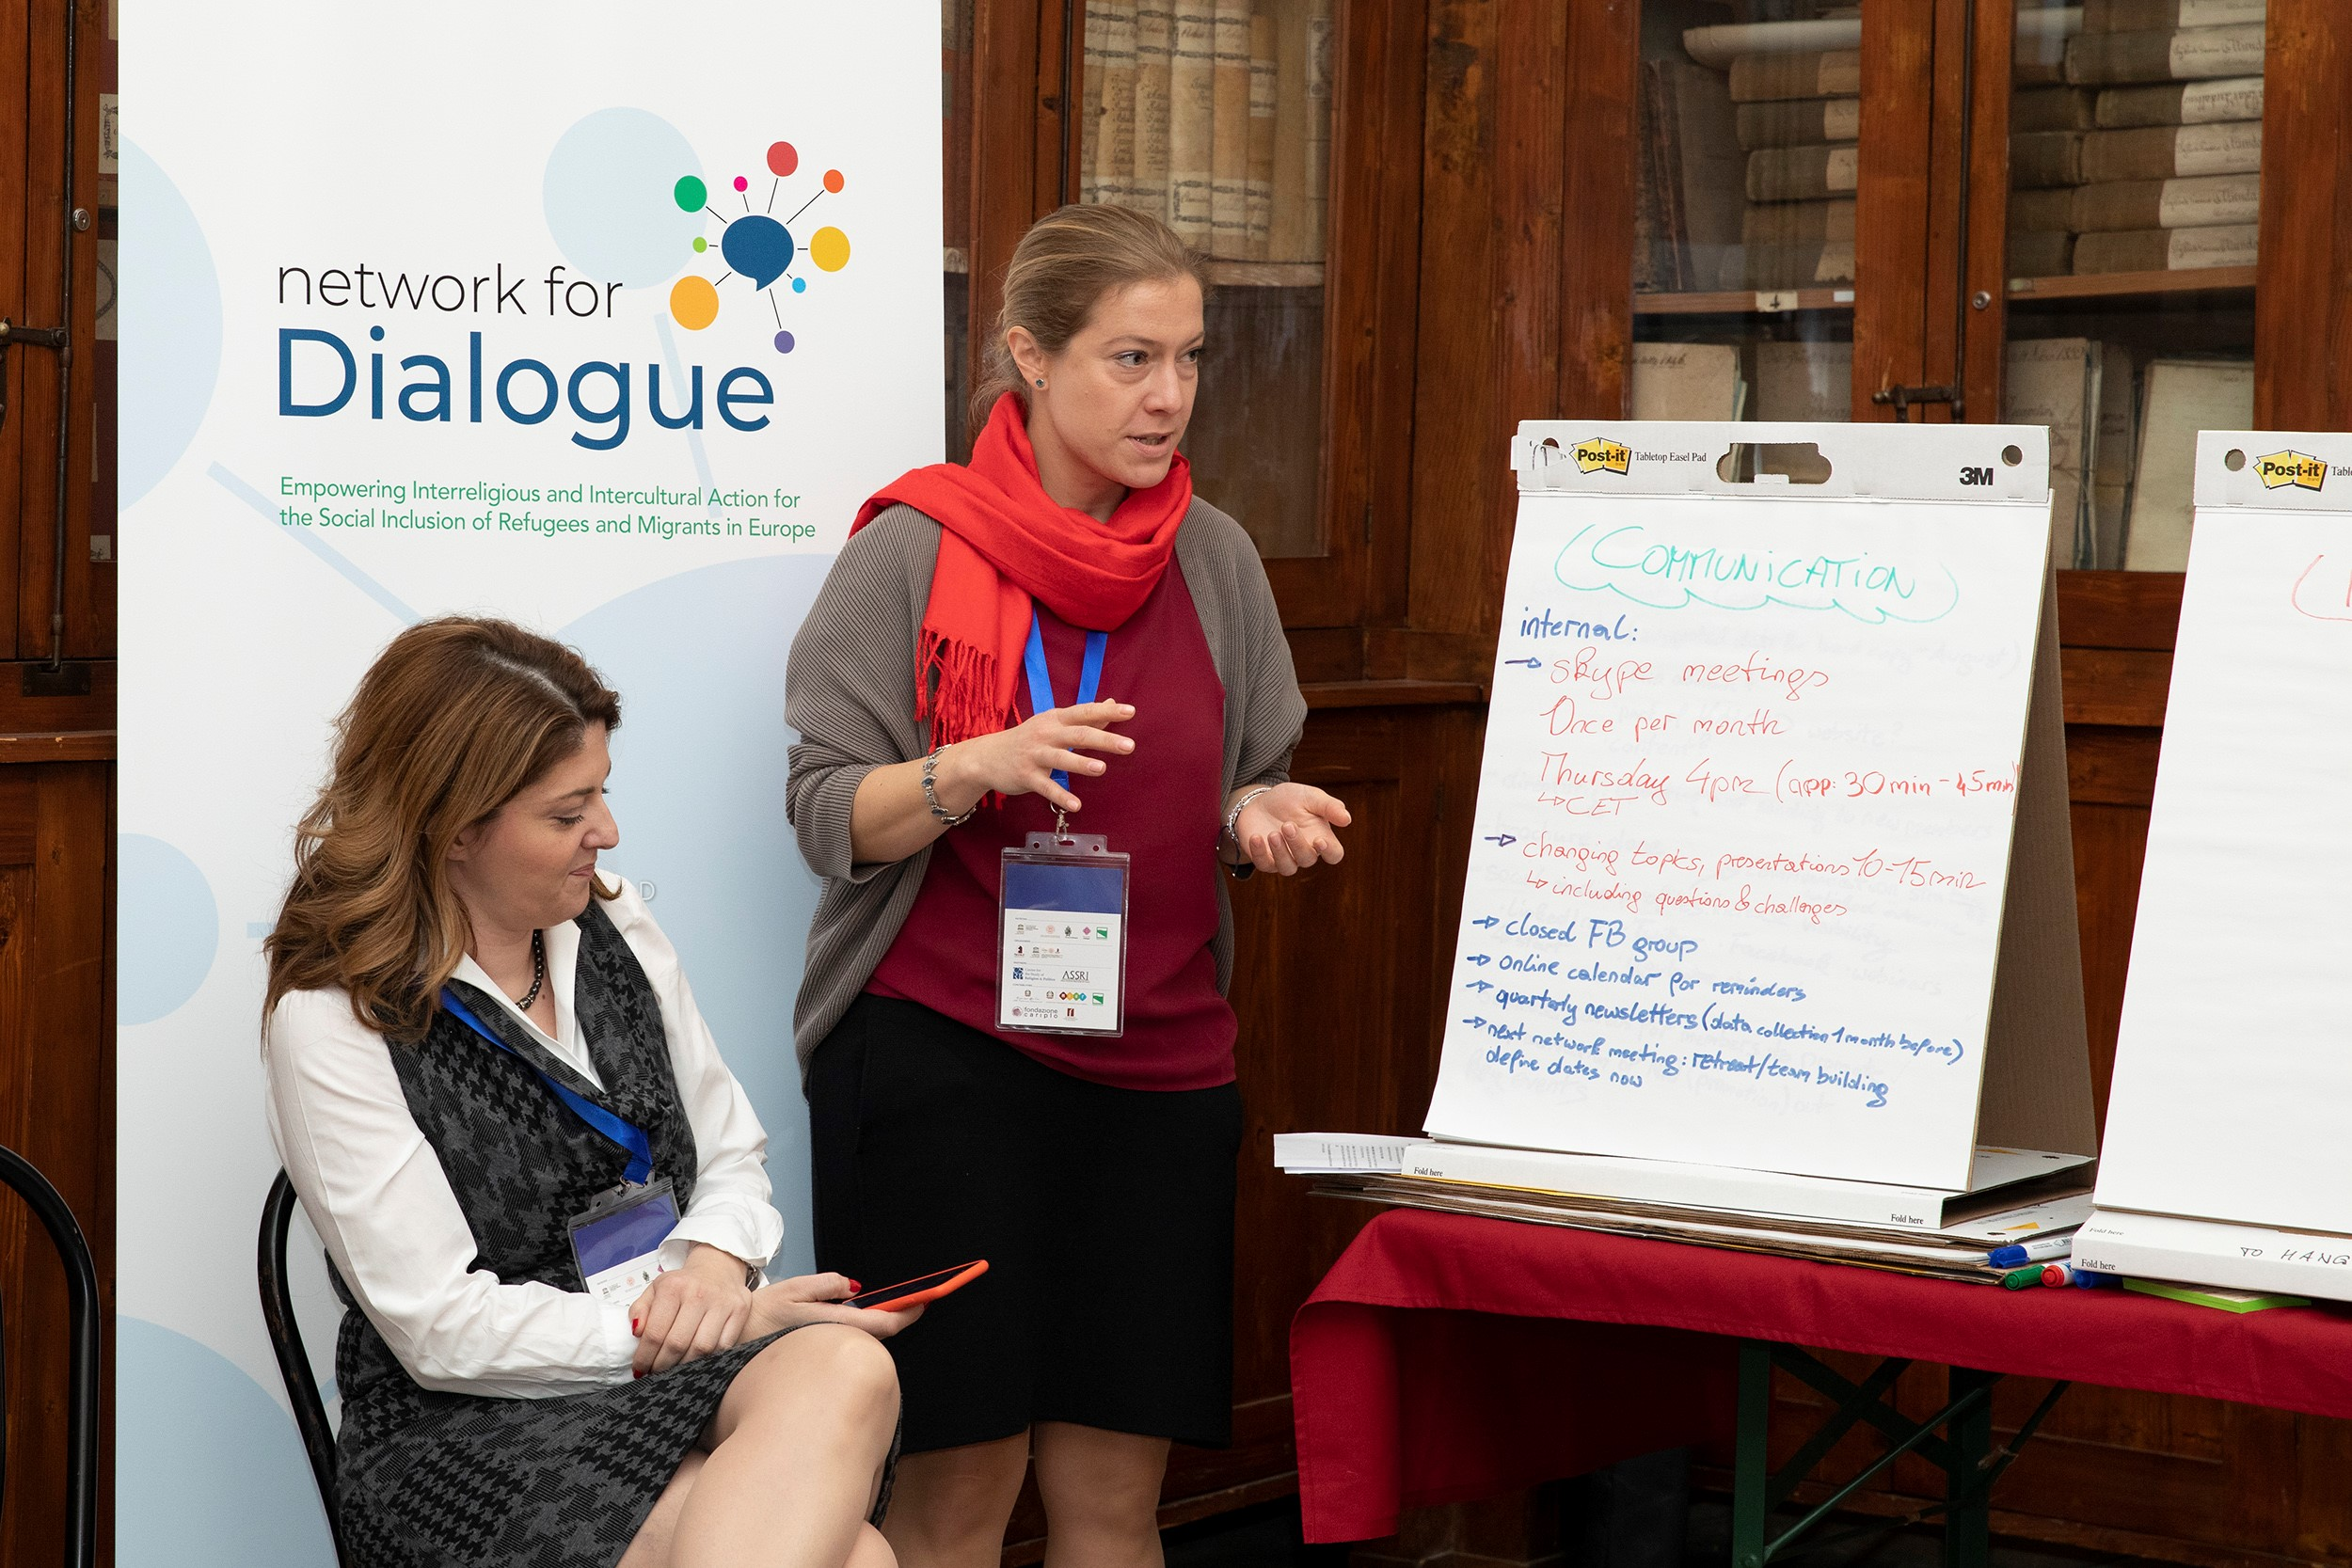 network for dialogue